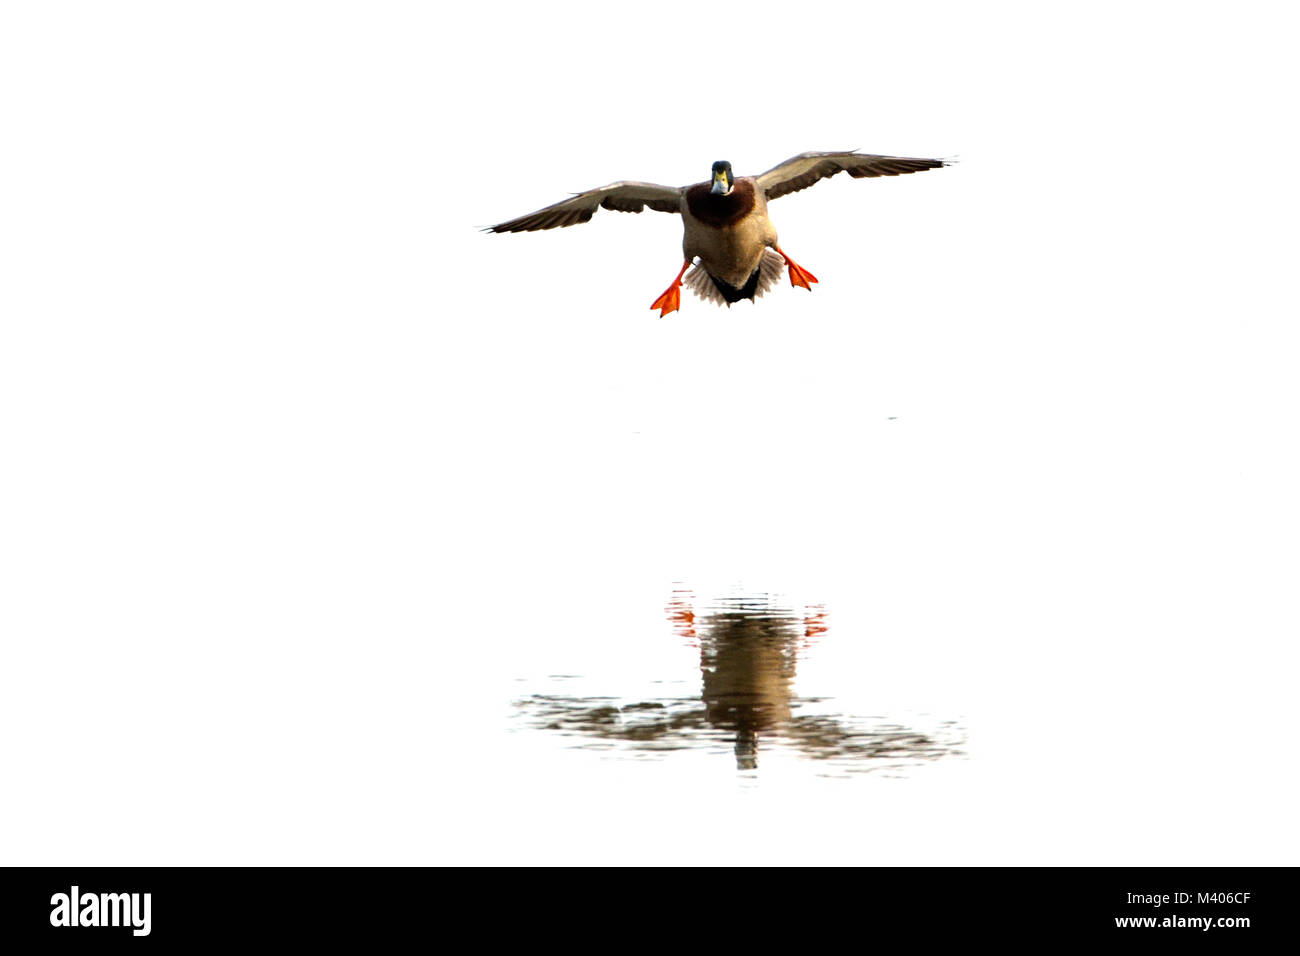 Mallard Duck (Anas platyrhynchos) Male, with Reflection - Stock Image